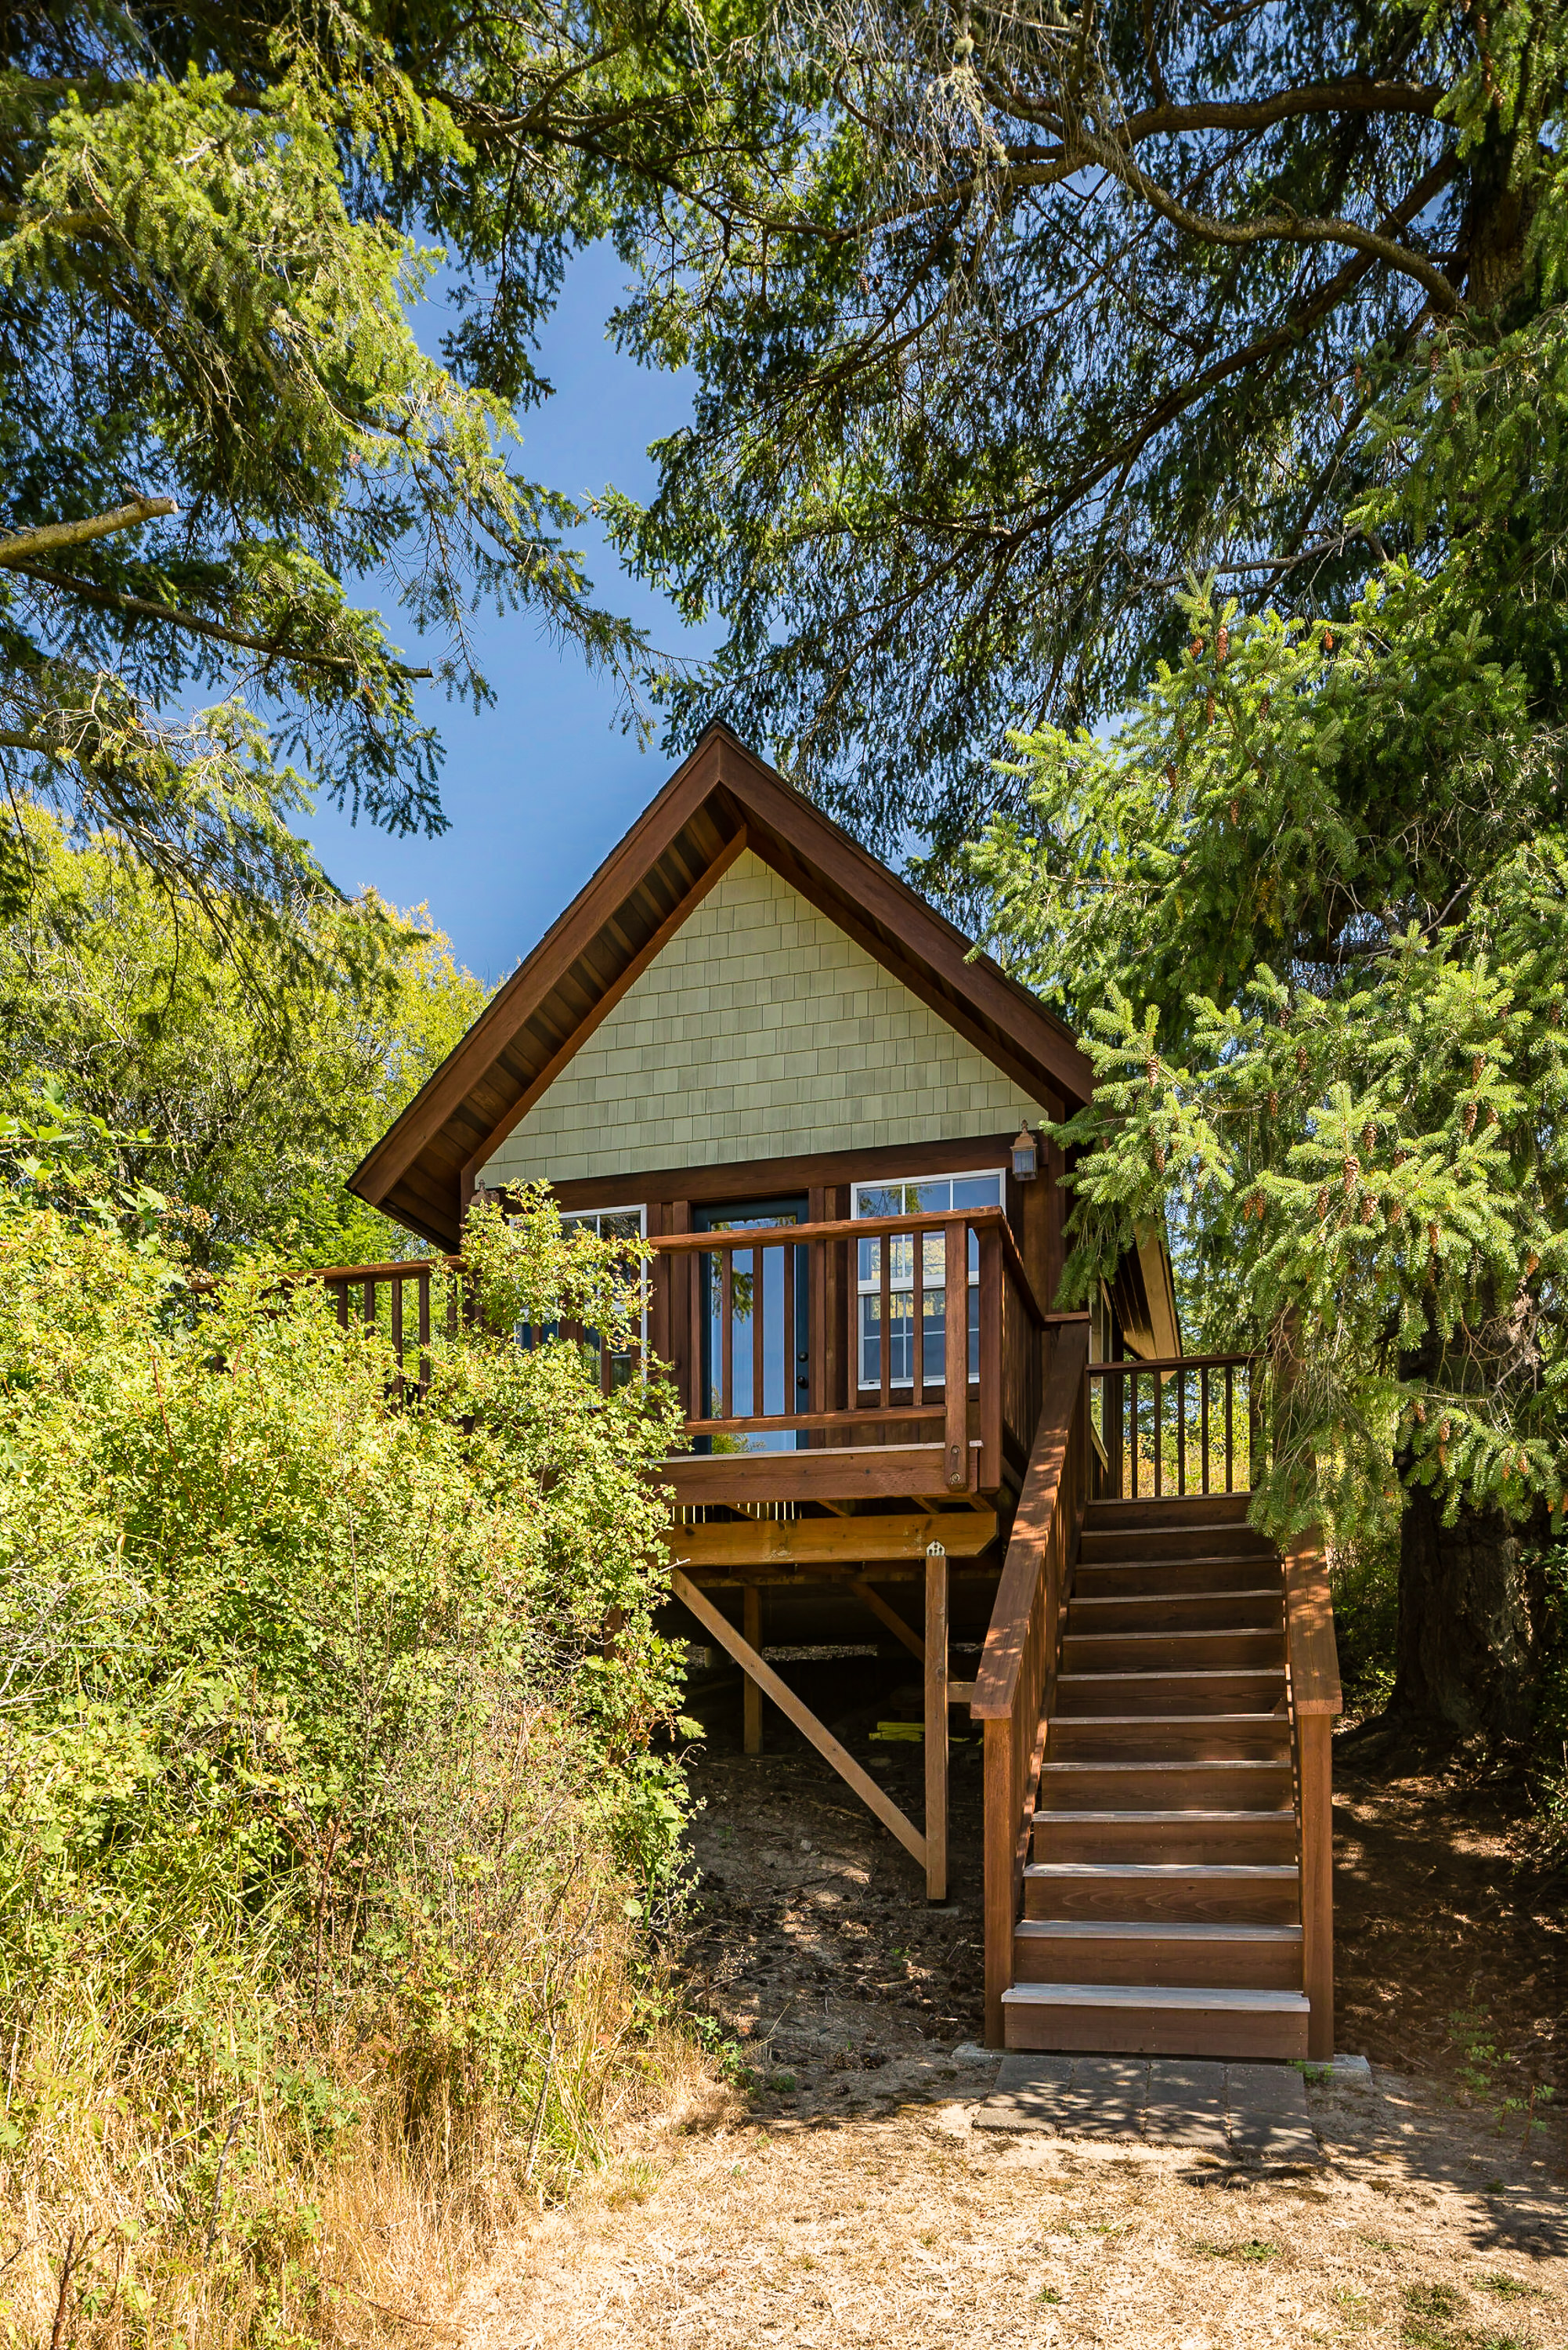 54 Calypso Ln - Friday Harbor San Juan Island Washington